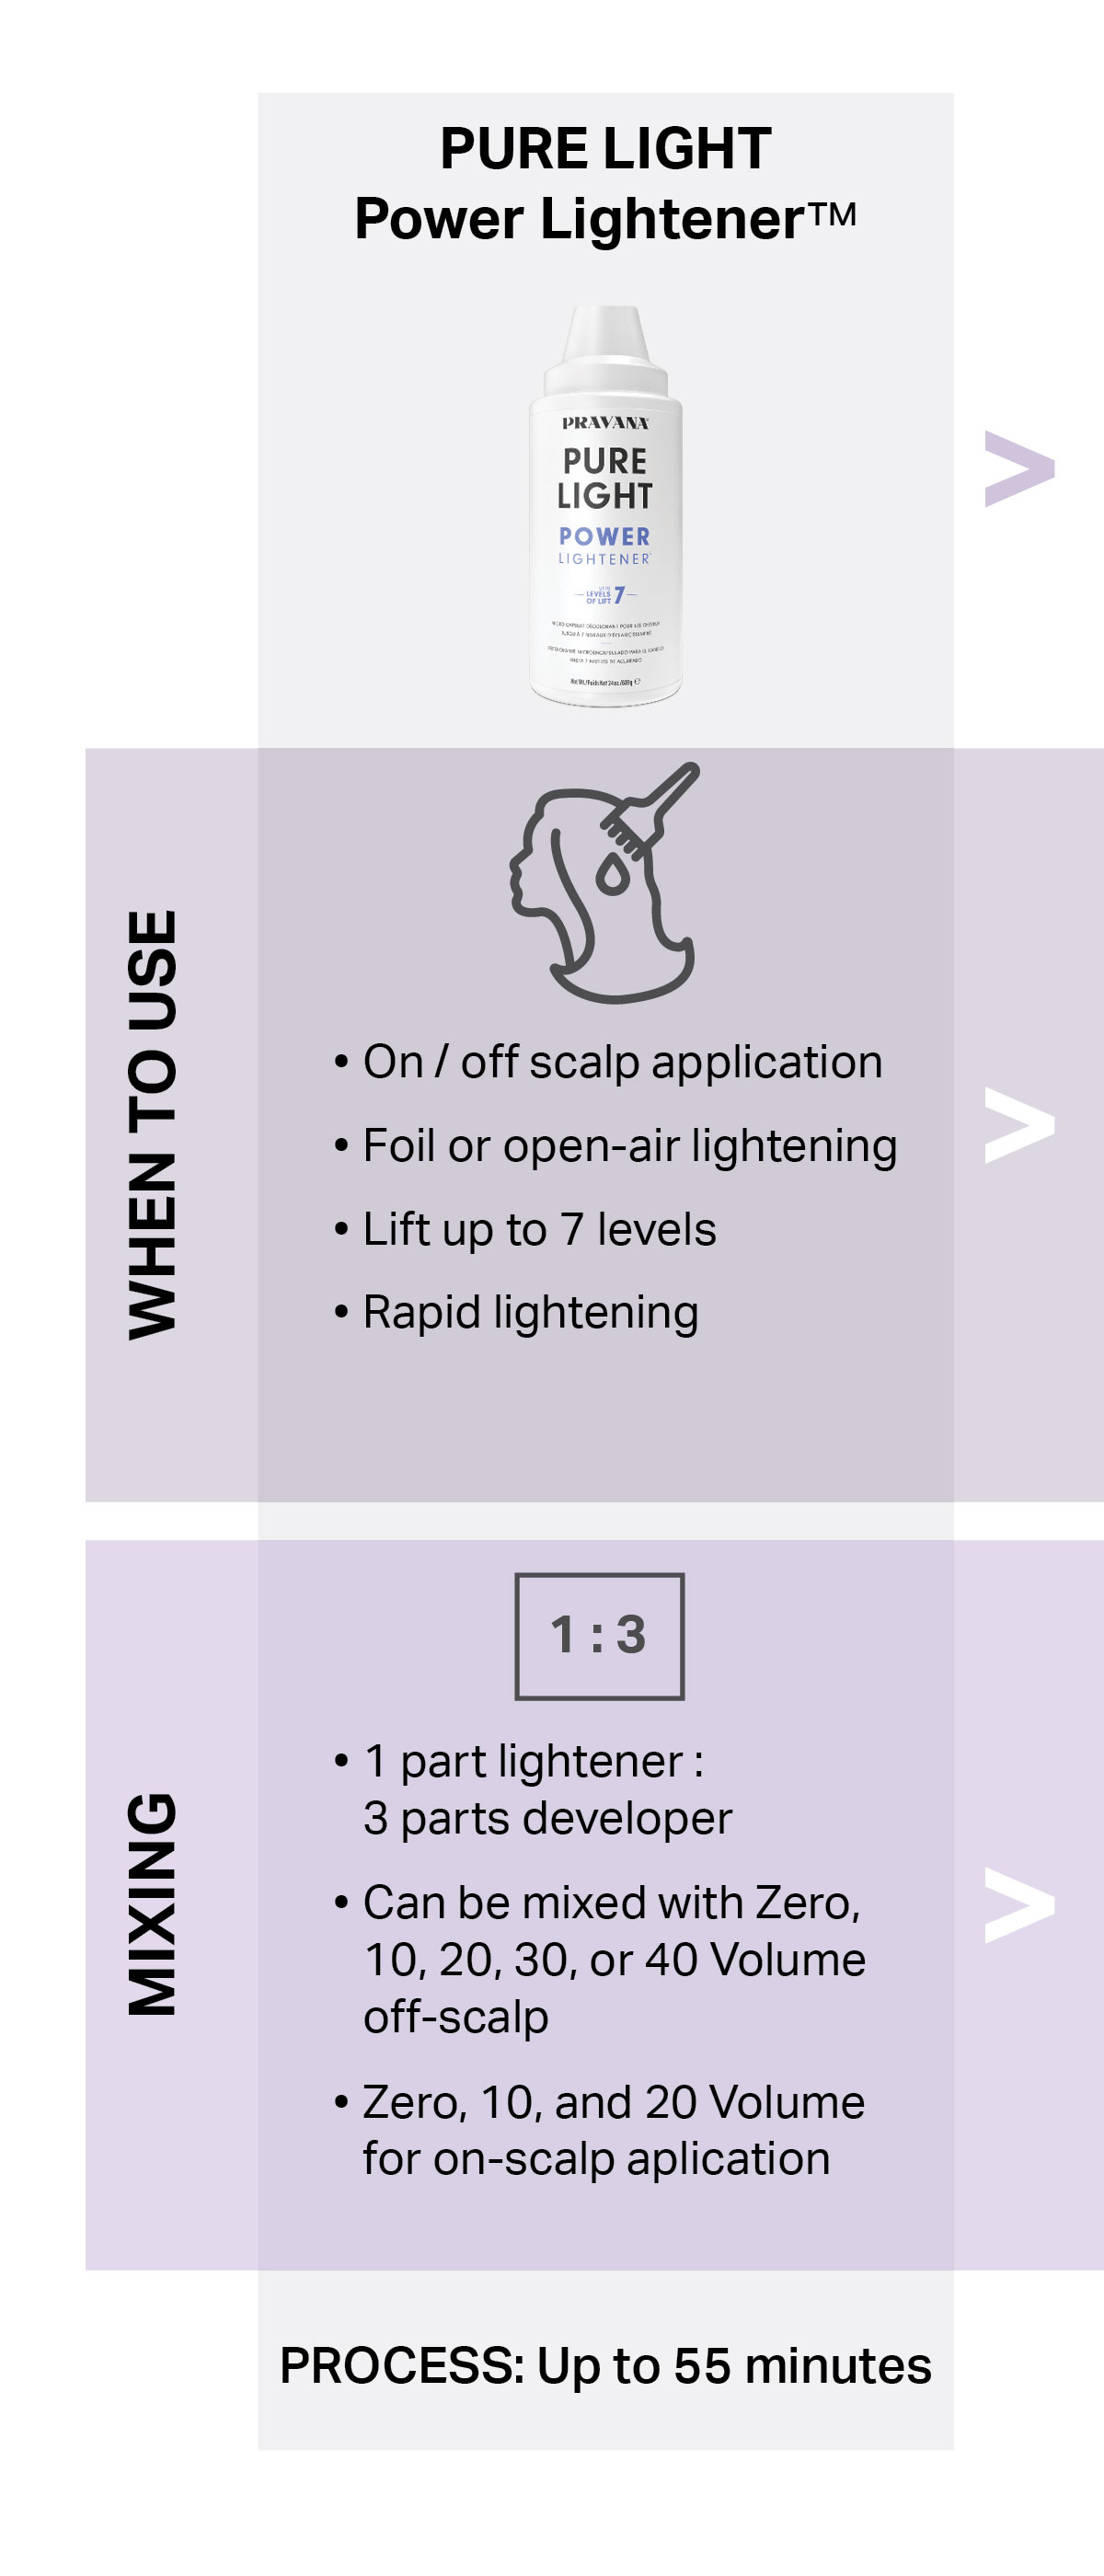 pure light power lightener. when to use: on/off scalp application, foil or open-air-lightening, lift up to 7 levels, rapid lightening. mixing: 1 to 3. 1 part lightener : 3 parts developer. can be mixed with zero, 10, 20, 30, or 40 volume off-scalp. zero, 10, and 20 volume for on–scalp application